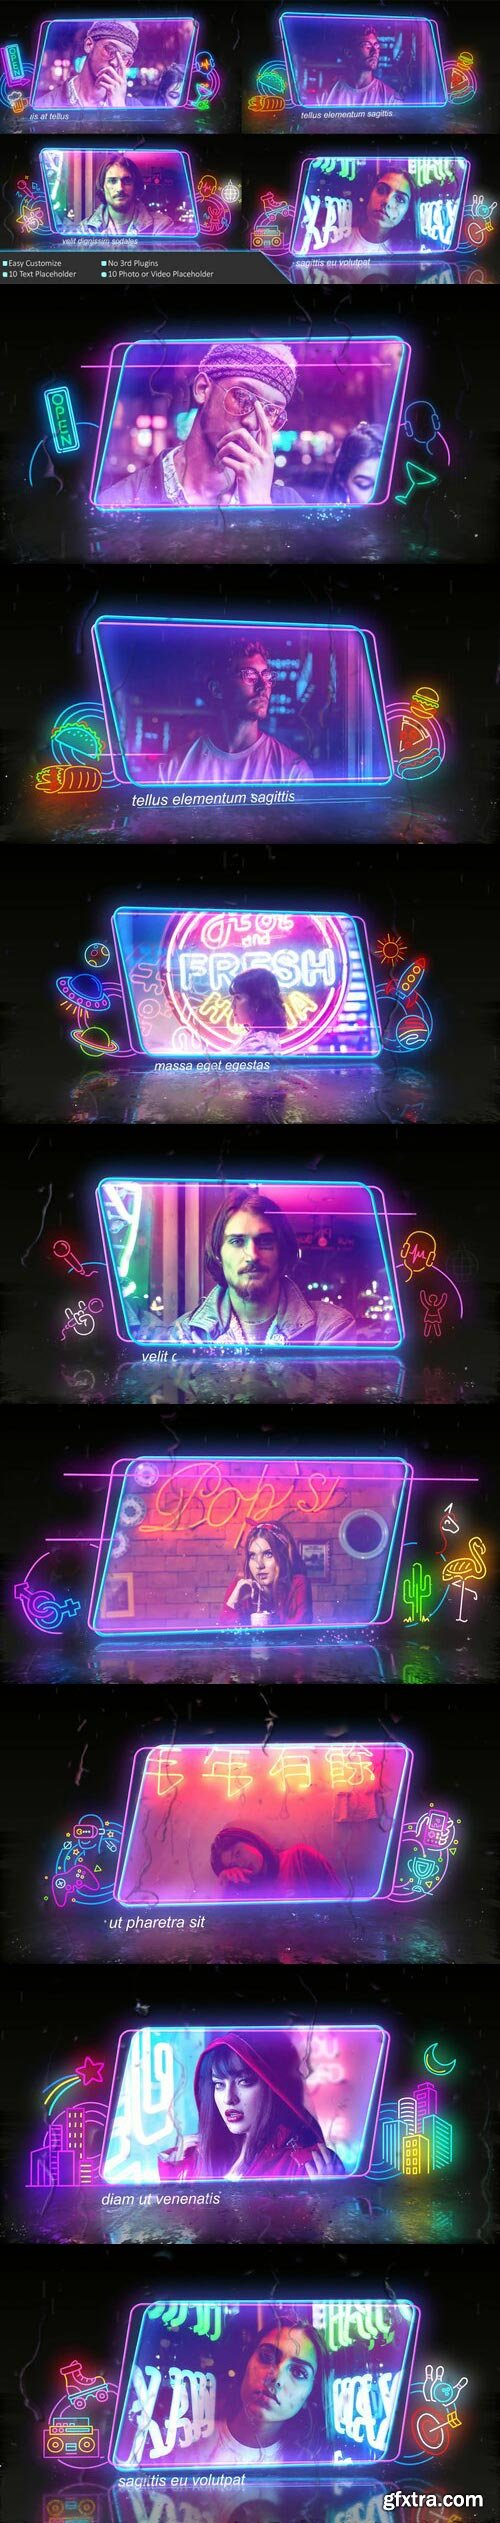 Videohive - Neon Frame In The Rain Photo Slide - 30262952